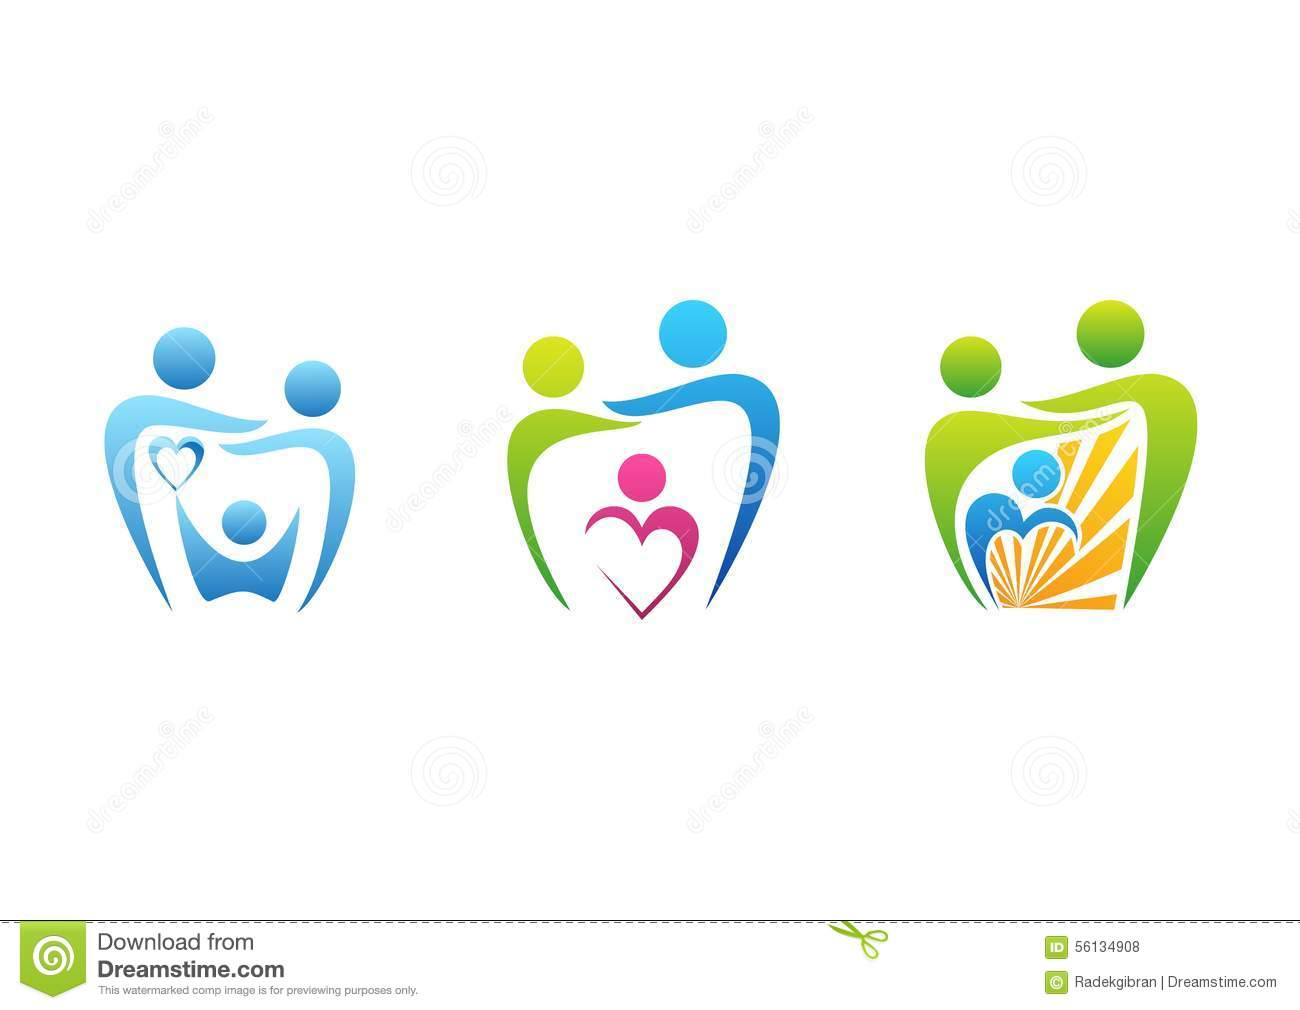 family-parenting-dental-care-logo-dentist-health-education-symbol-family-illustration-icon-set-design-vector-56134908.jpg